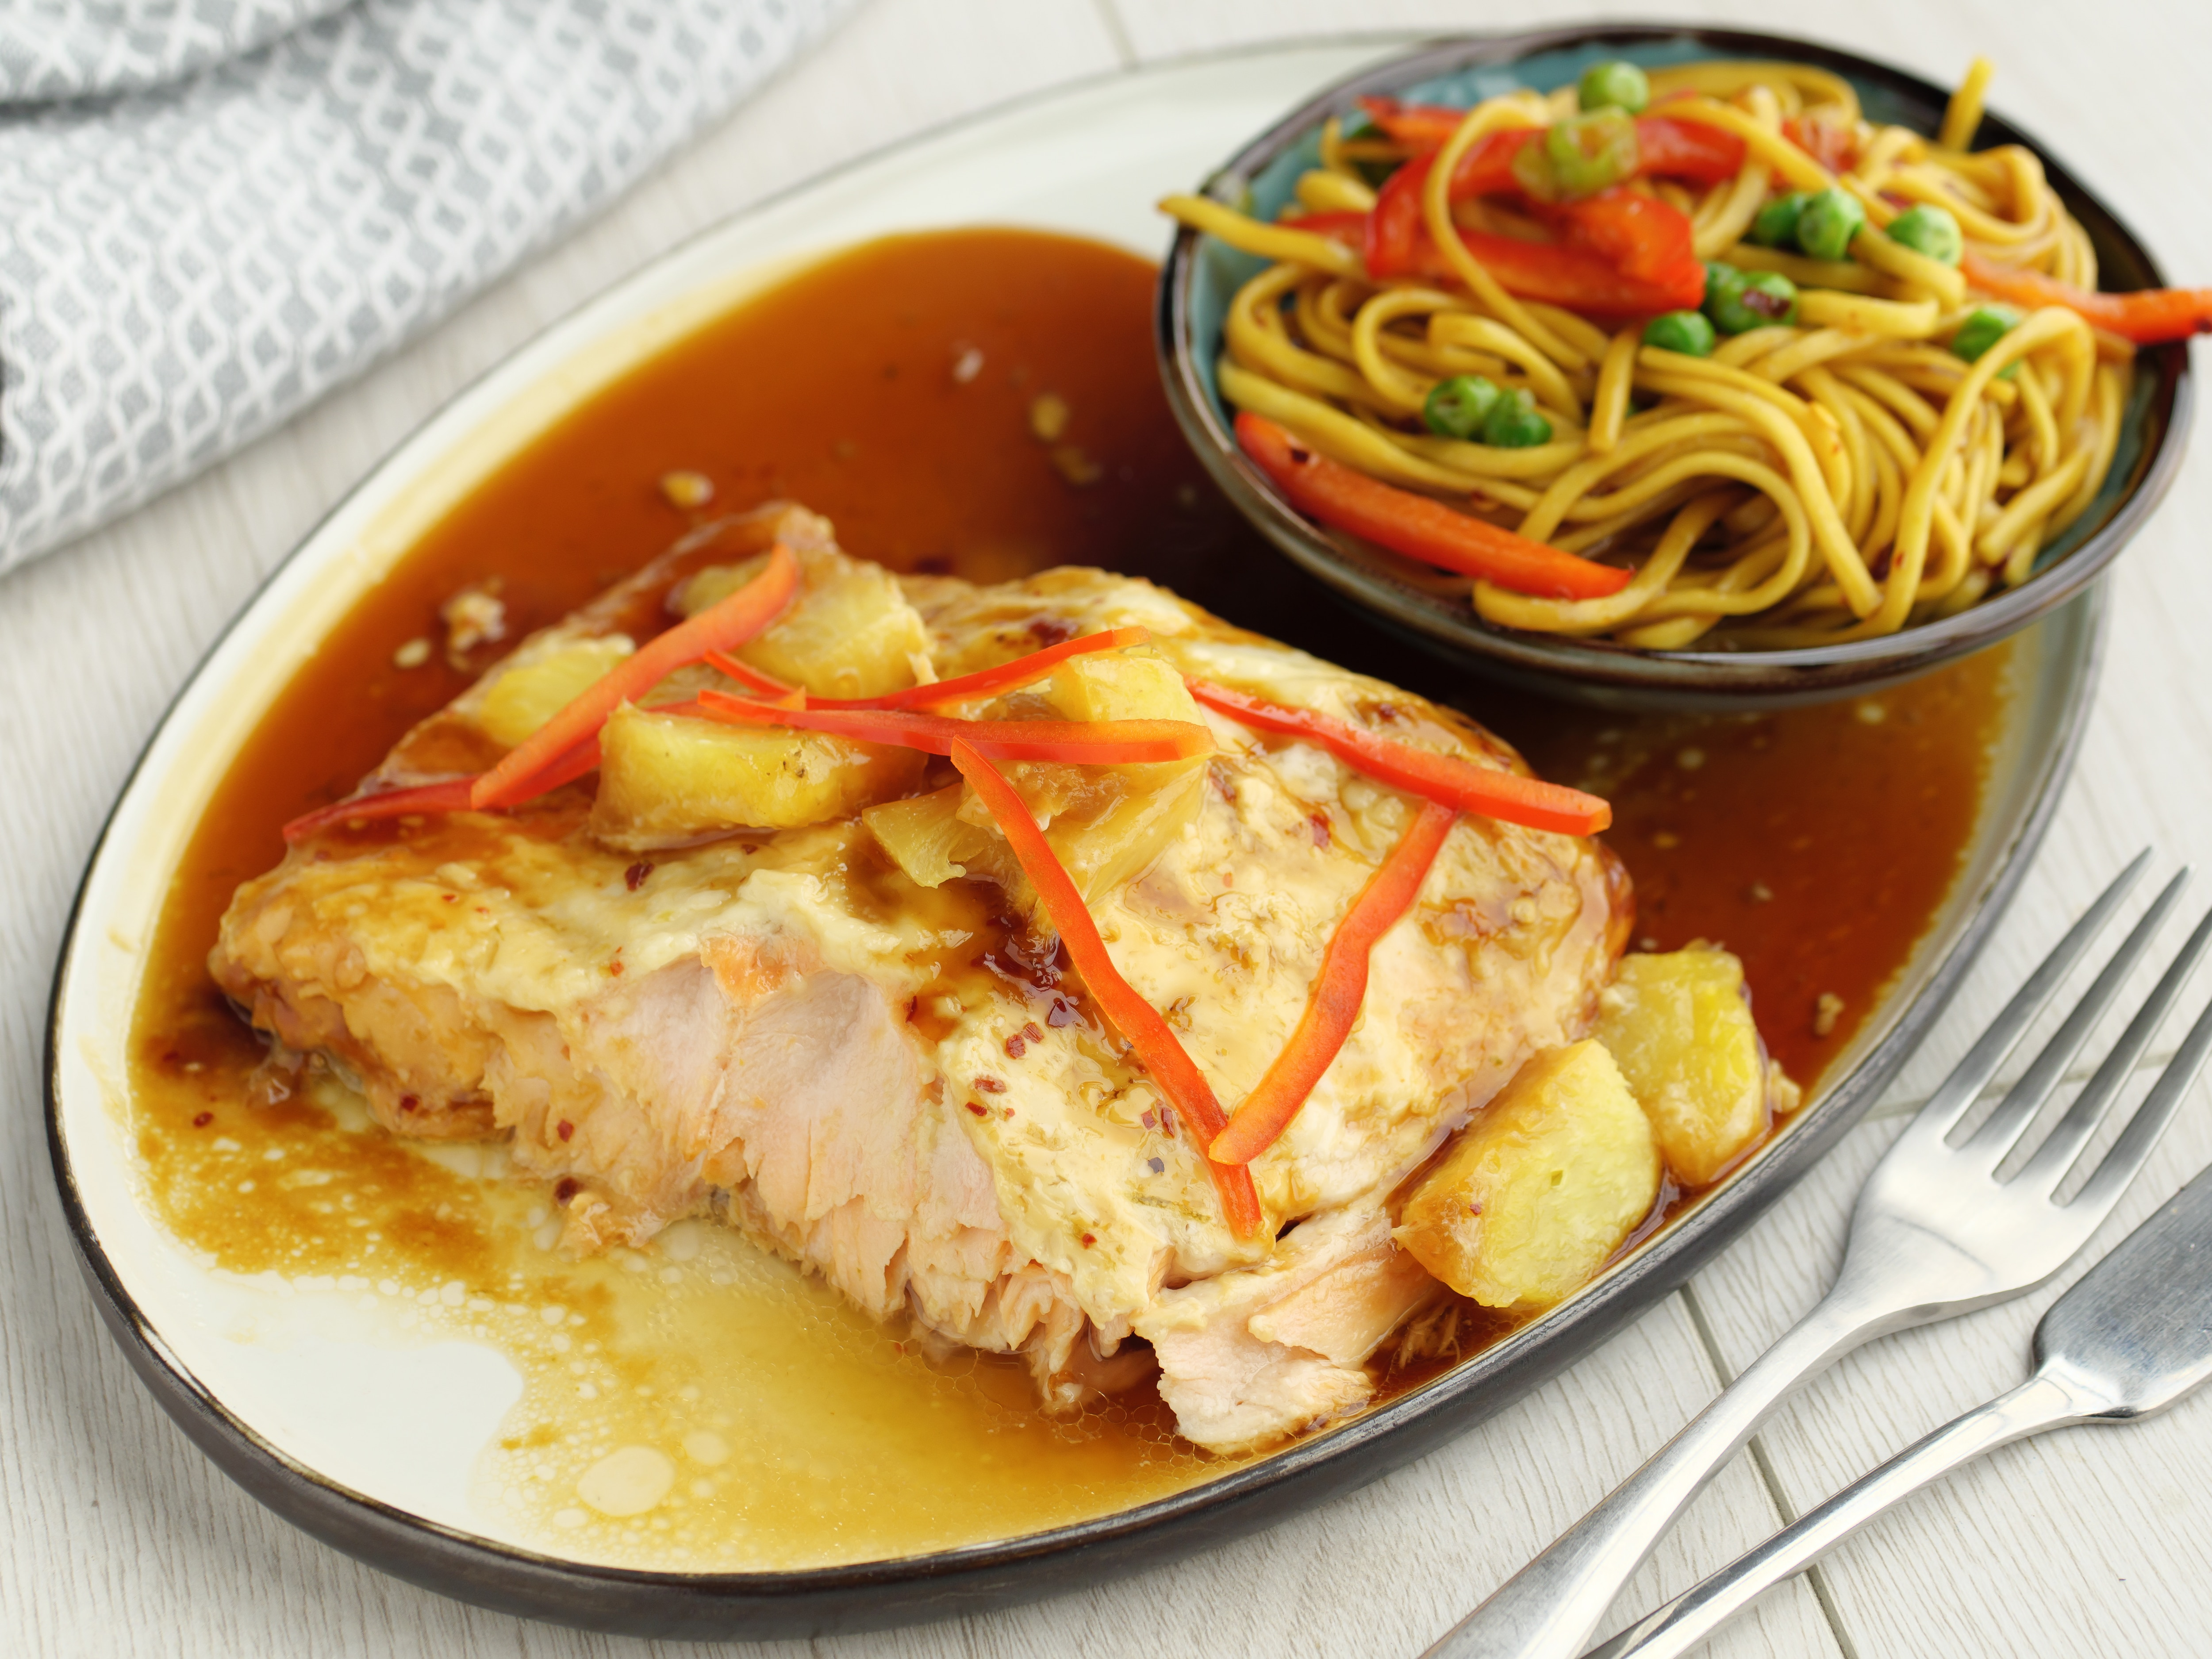 Baked Pineapple Salmon With Noodles